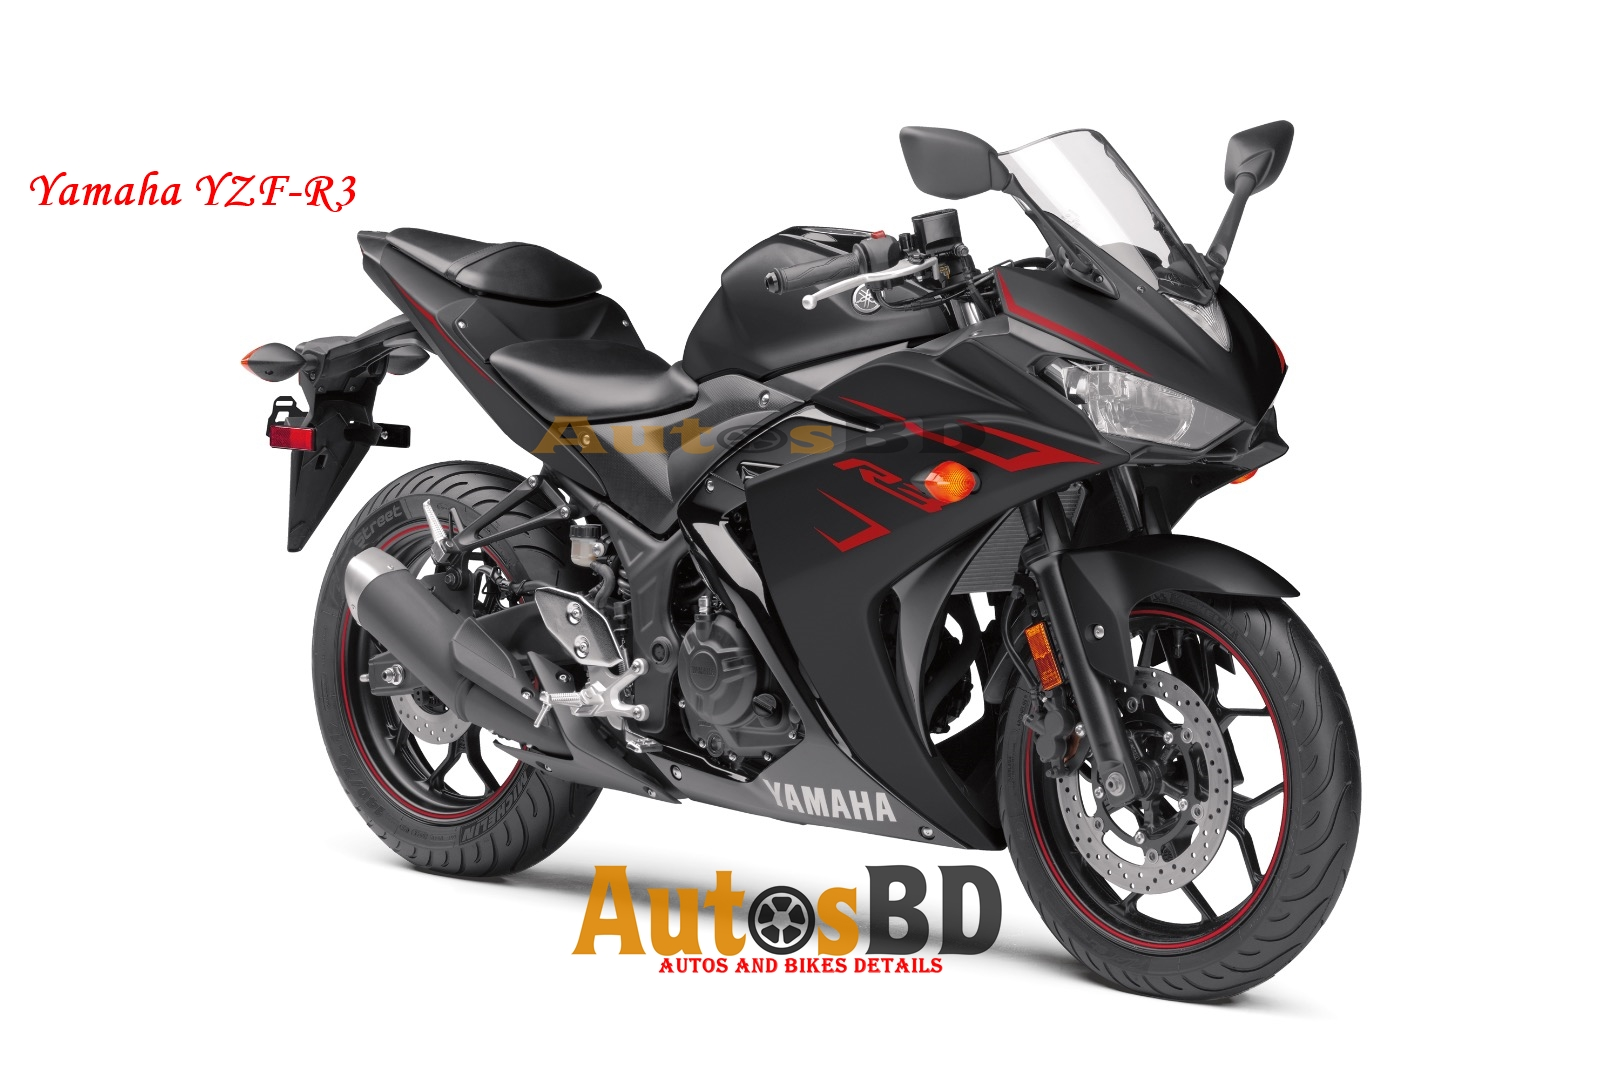 Yamaha YZF-R3 Motorcycle Specification